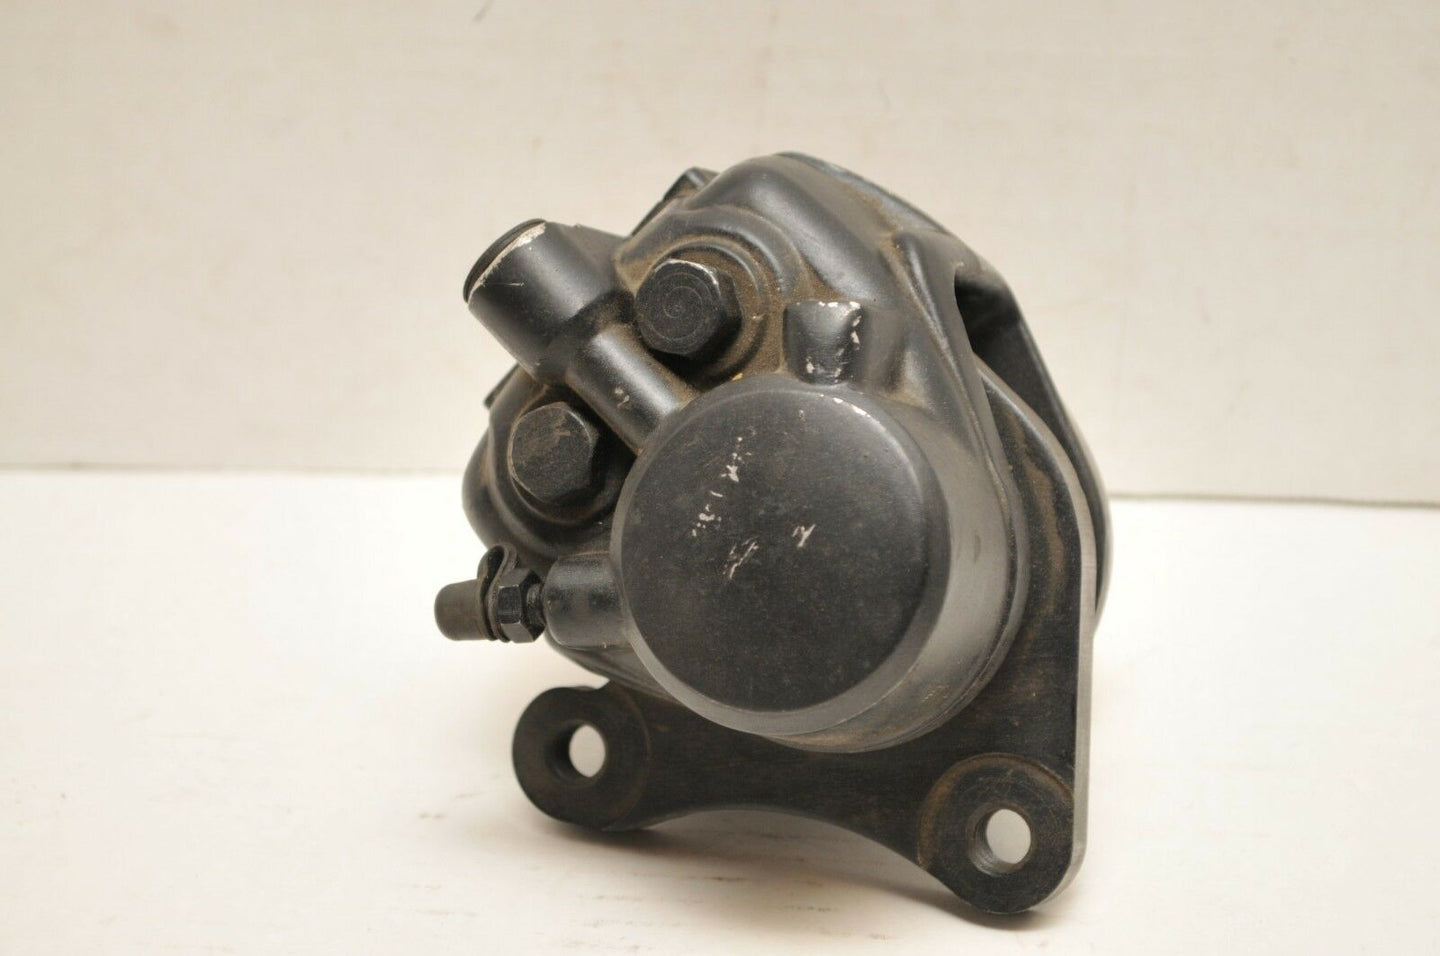 NOS GENUINE KAWASAKI 43041-1006 front brake caliper assembly KZ650 KZ750 1976-79